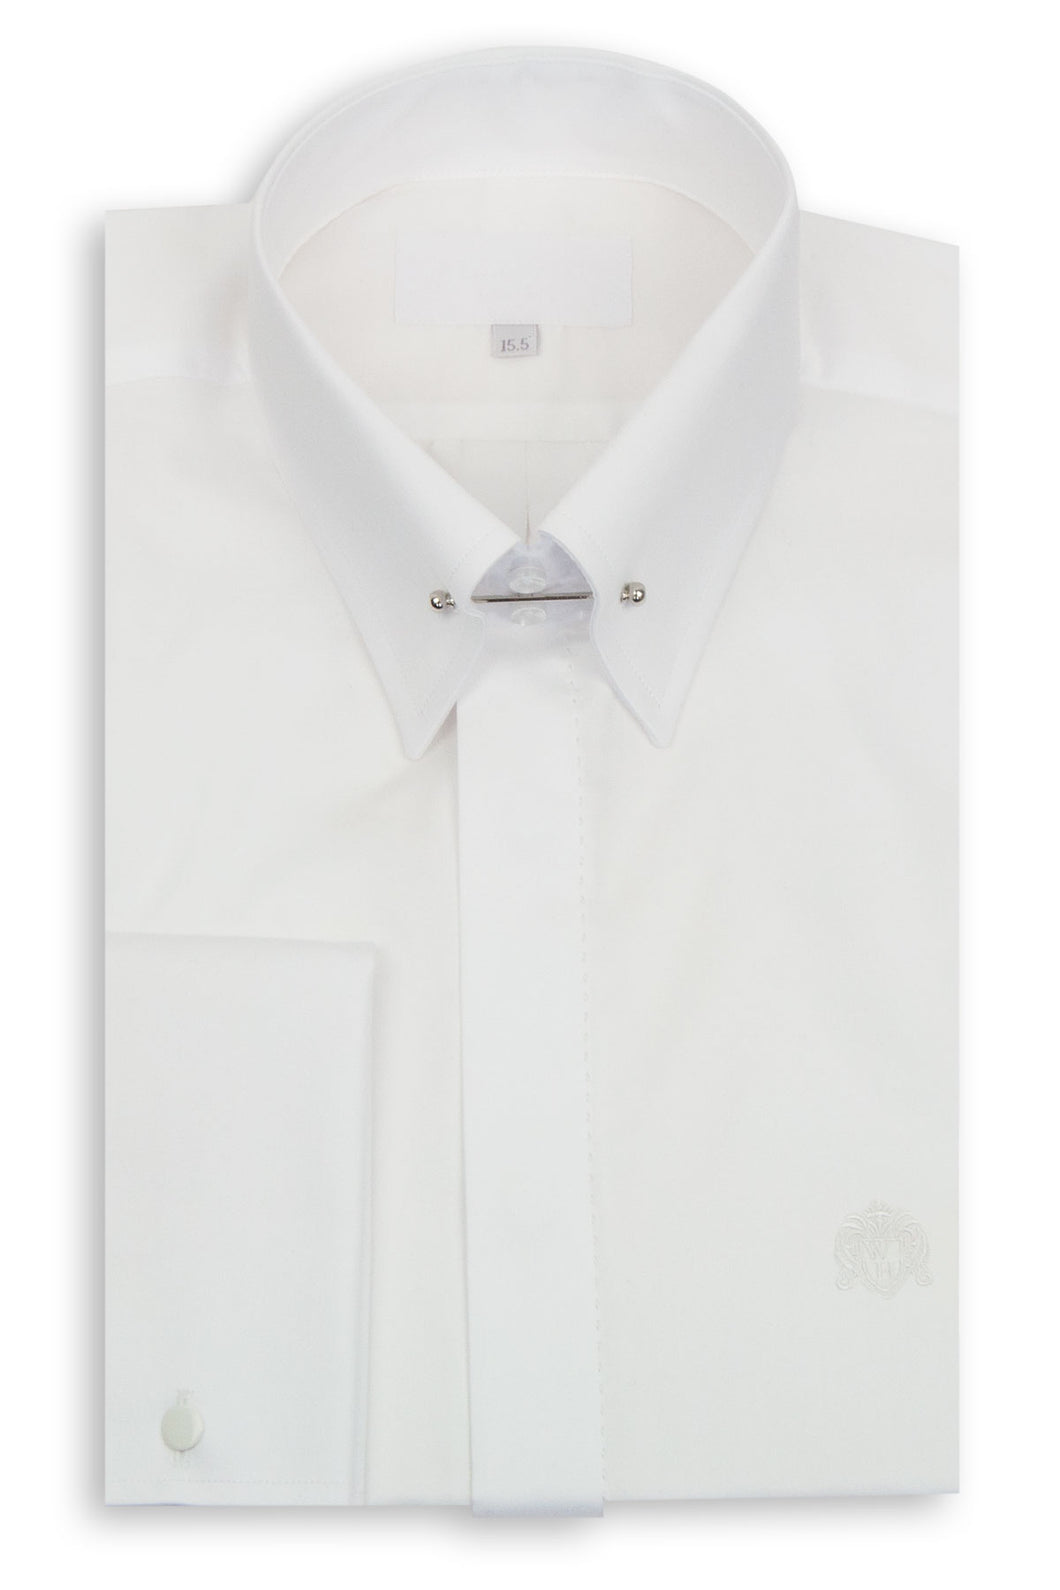 White Point Pin Collar Shirt